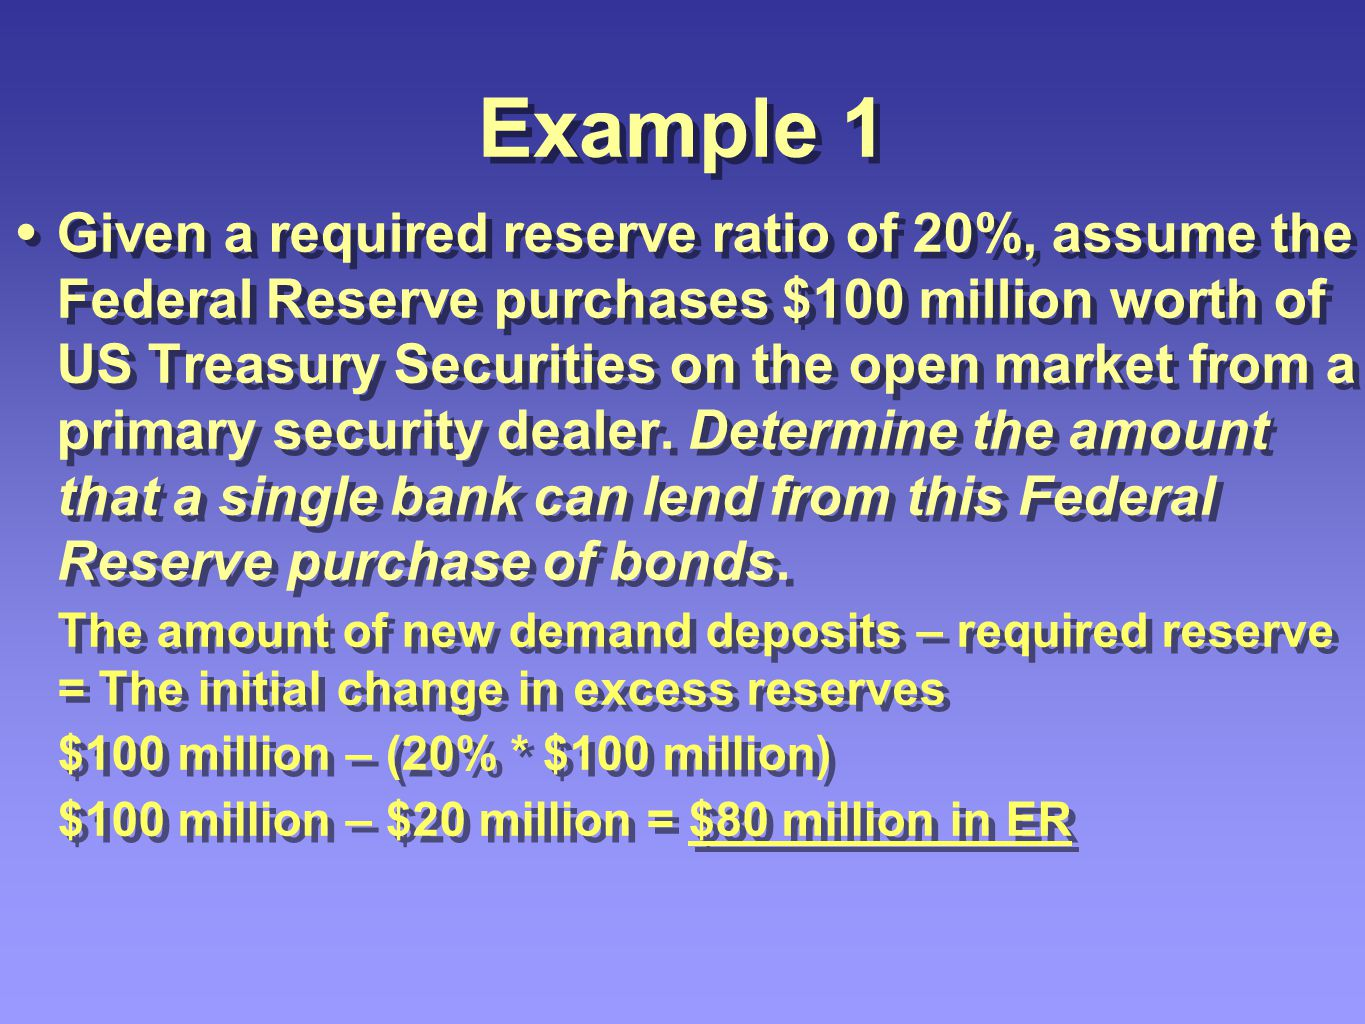 Example 1 Given a required reserve ratio of 20%, assume the Federal Reserve purchases $100 million worth of US Treasury Securities on the open market